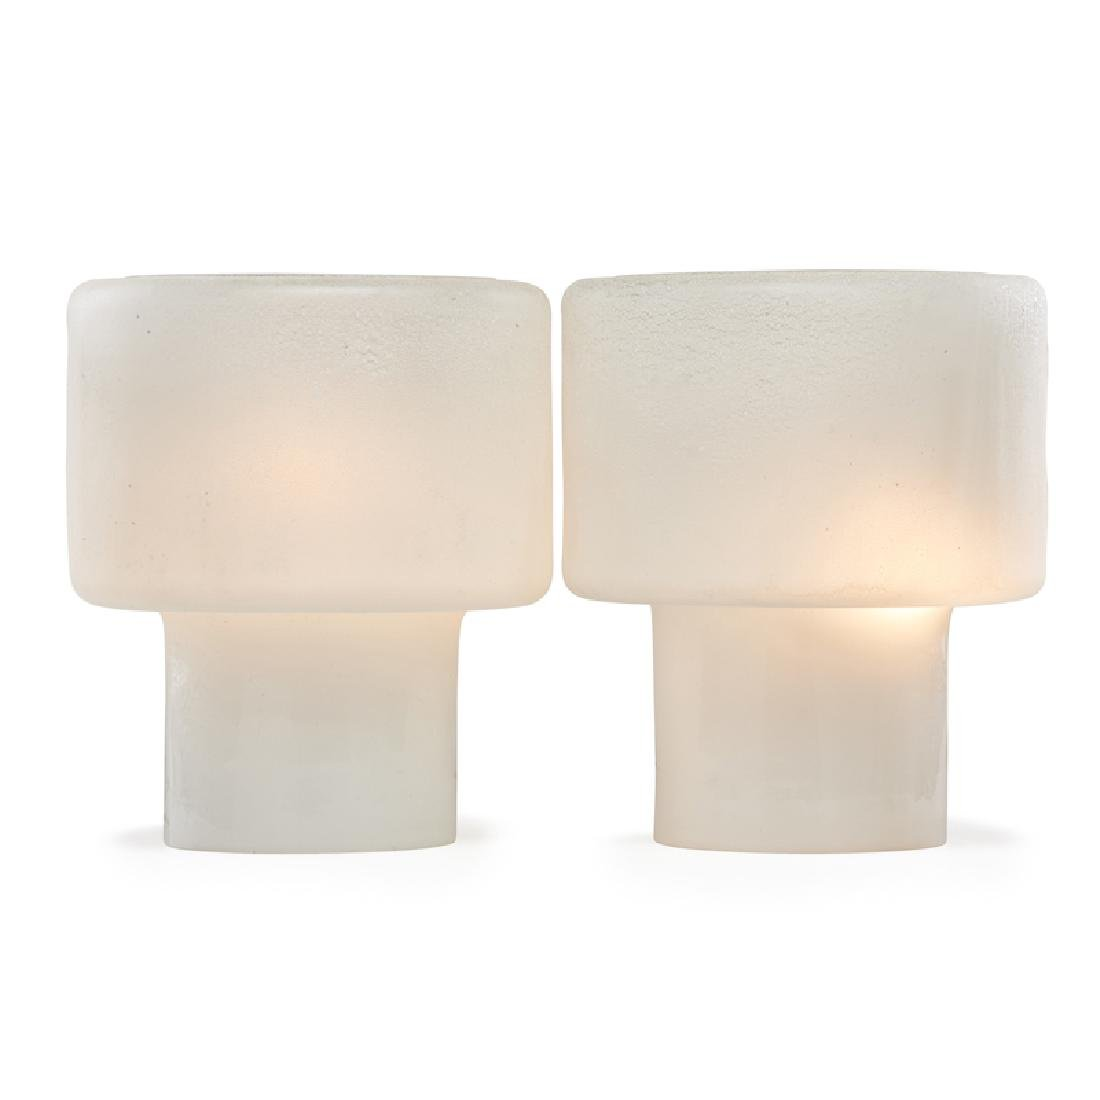 ALFREDO BARBINI Pair of lamps